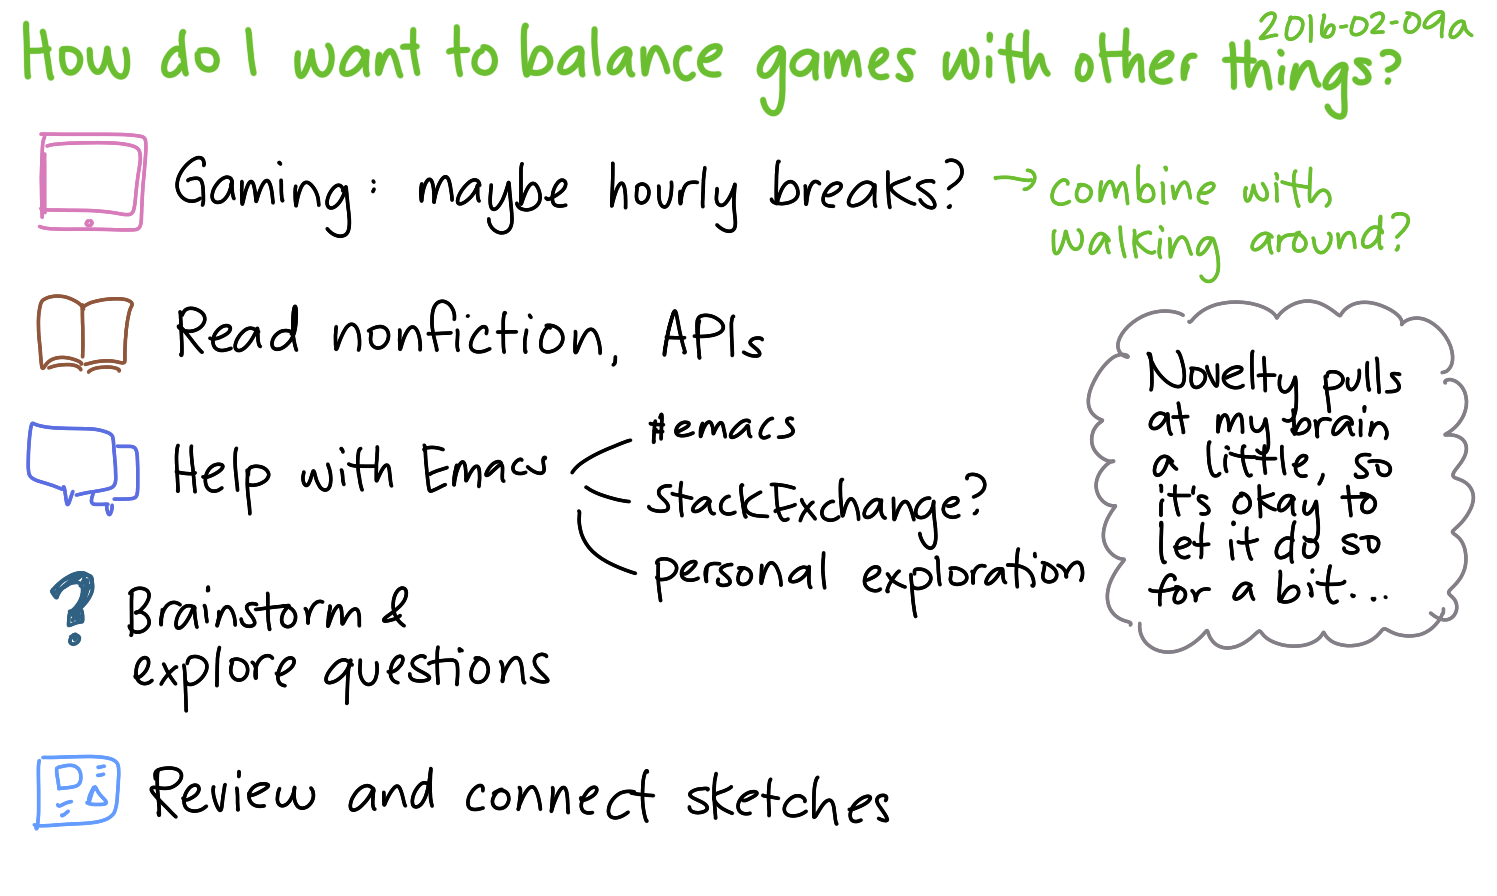 2016-02-09a How do I want to balance games with other things -- index card #gaming #balance.png